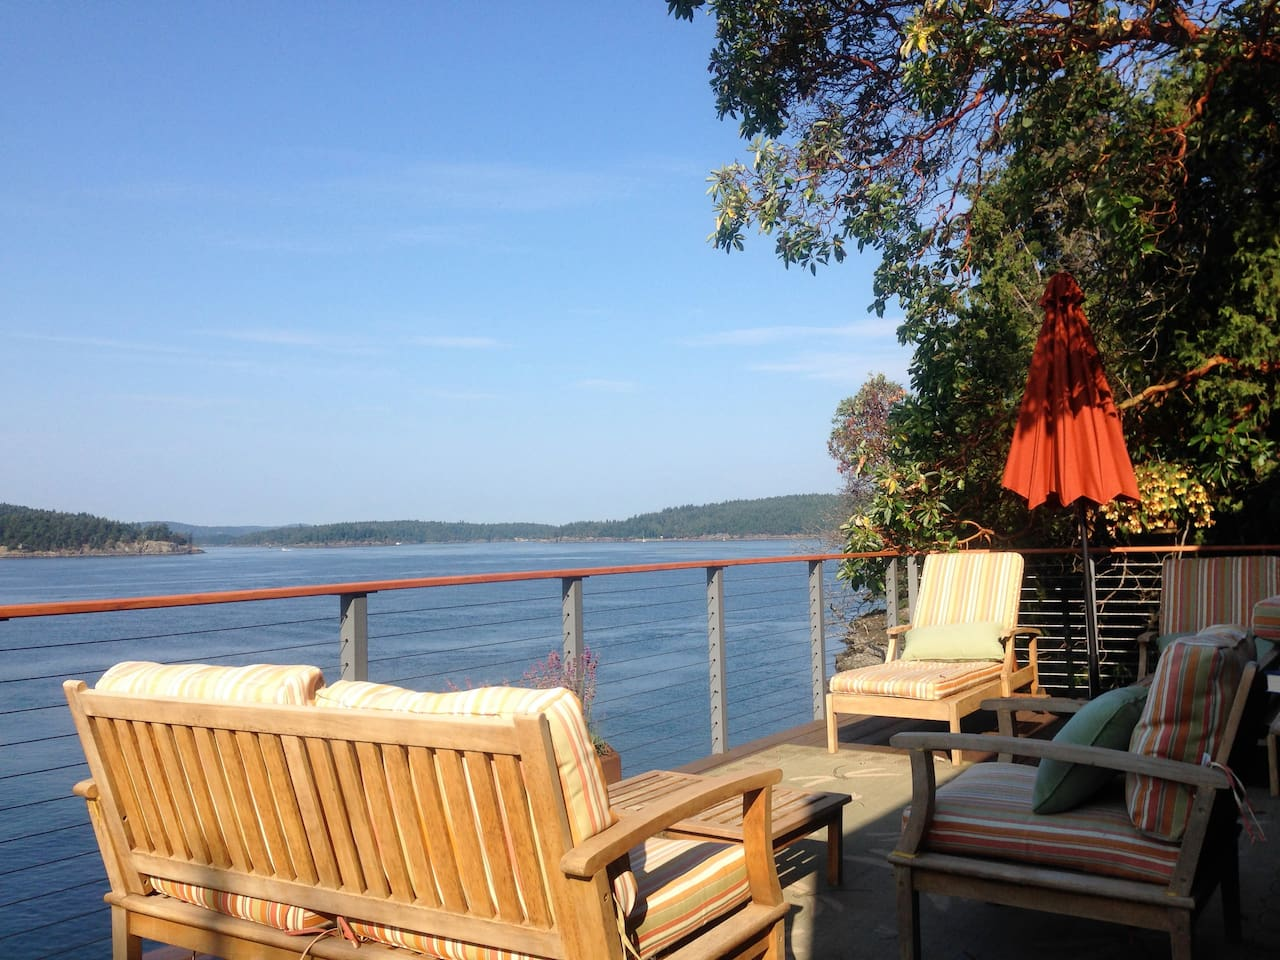 Relax on the beautiful deck which overlooks Harney Channel.